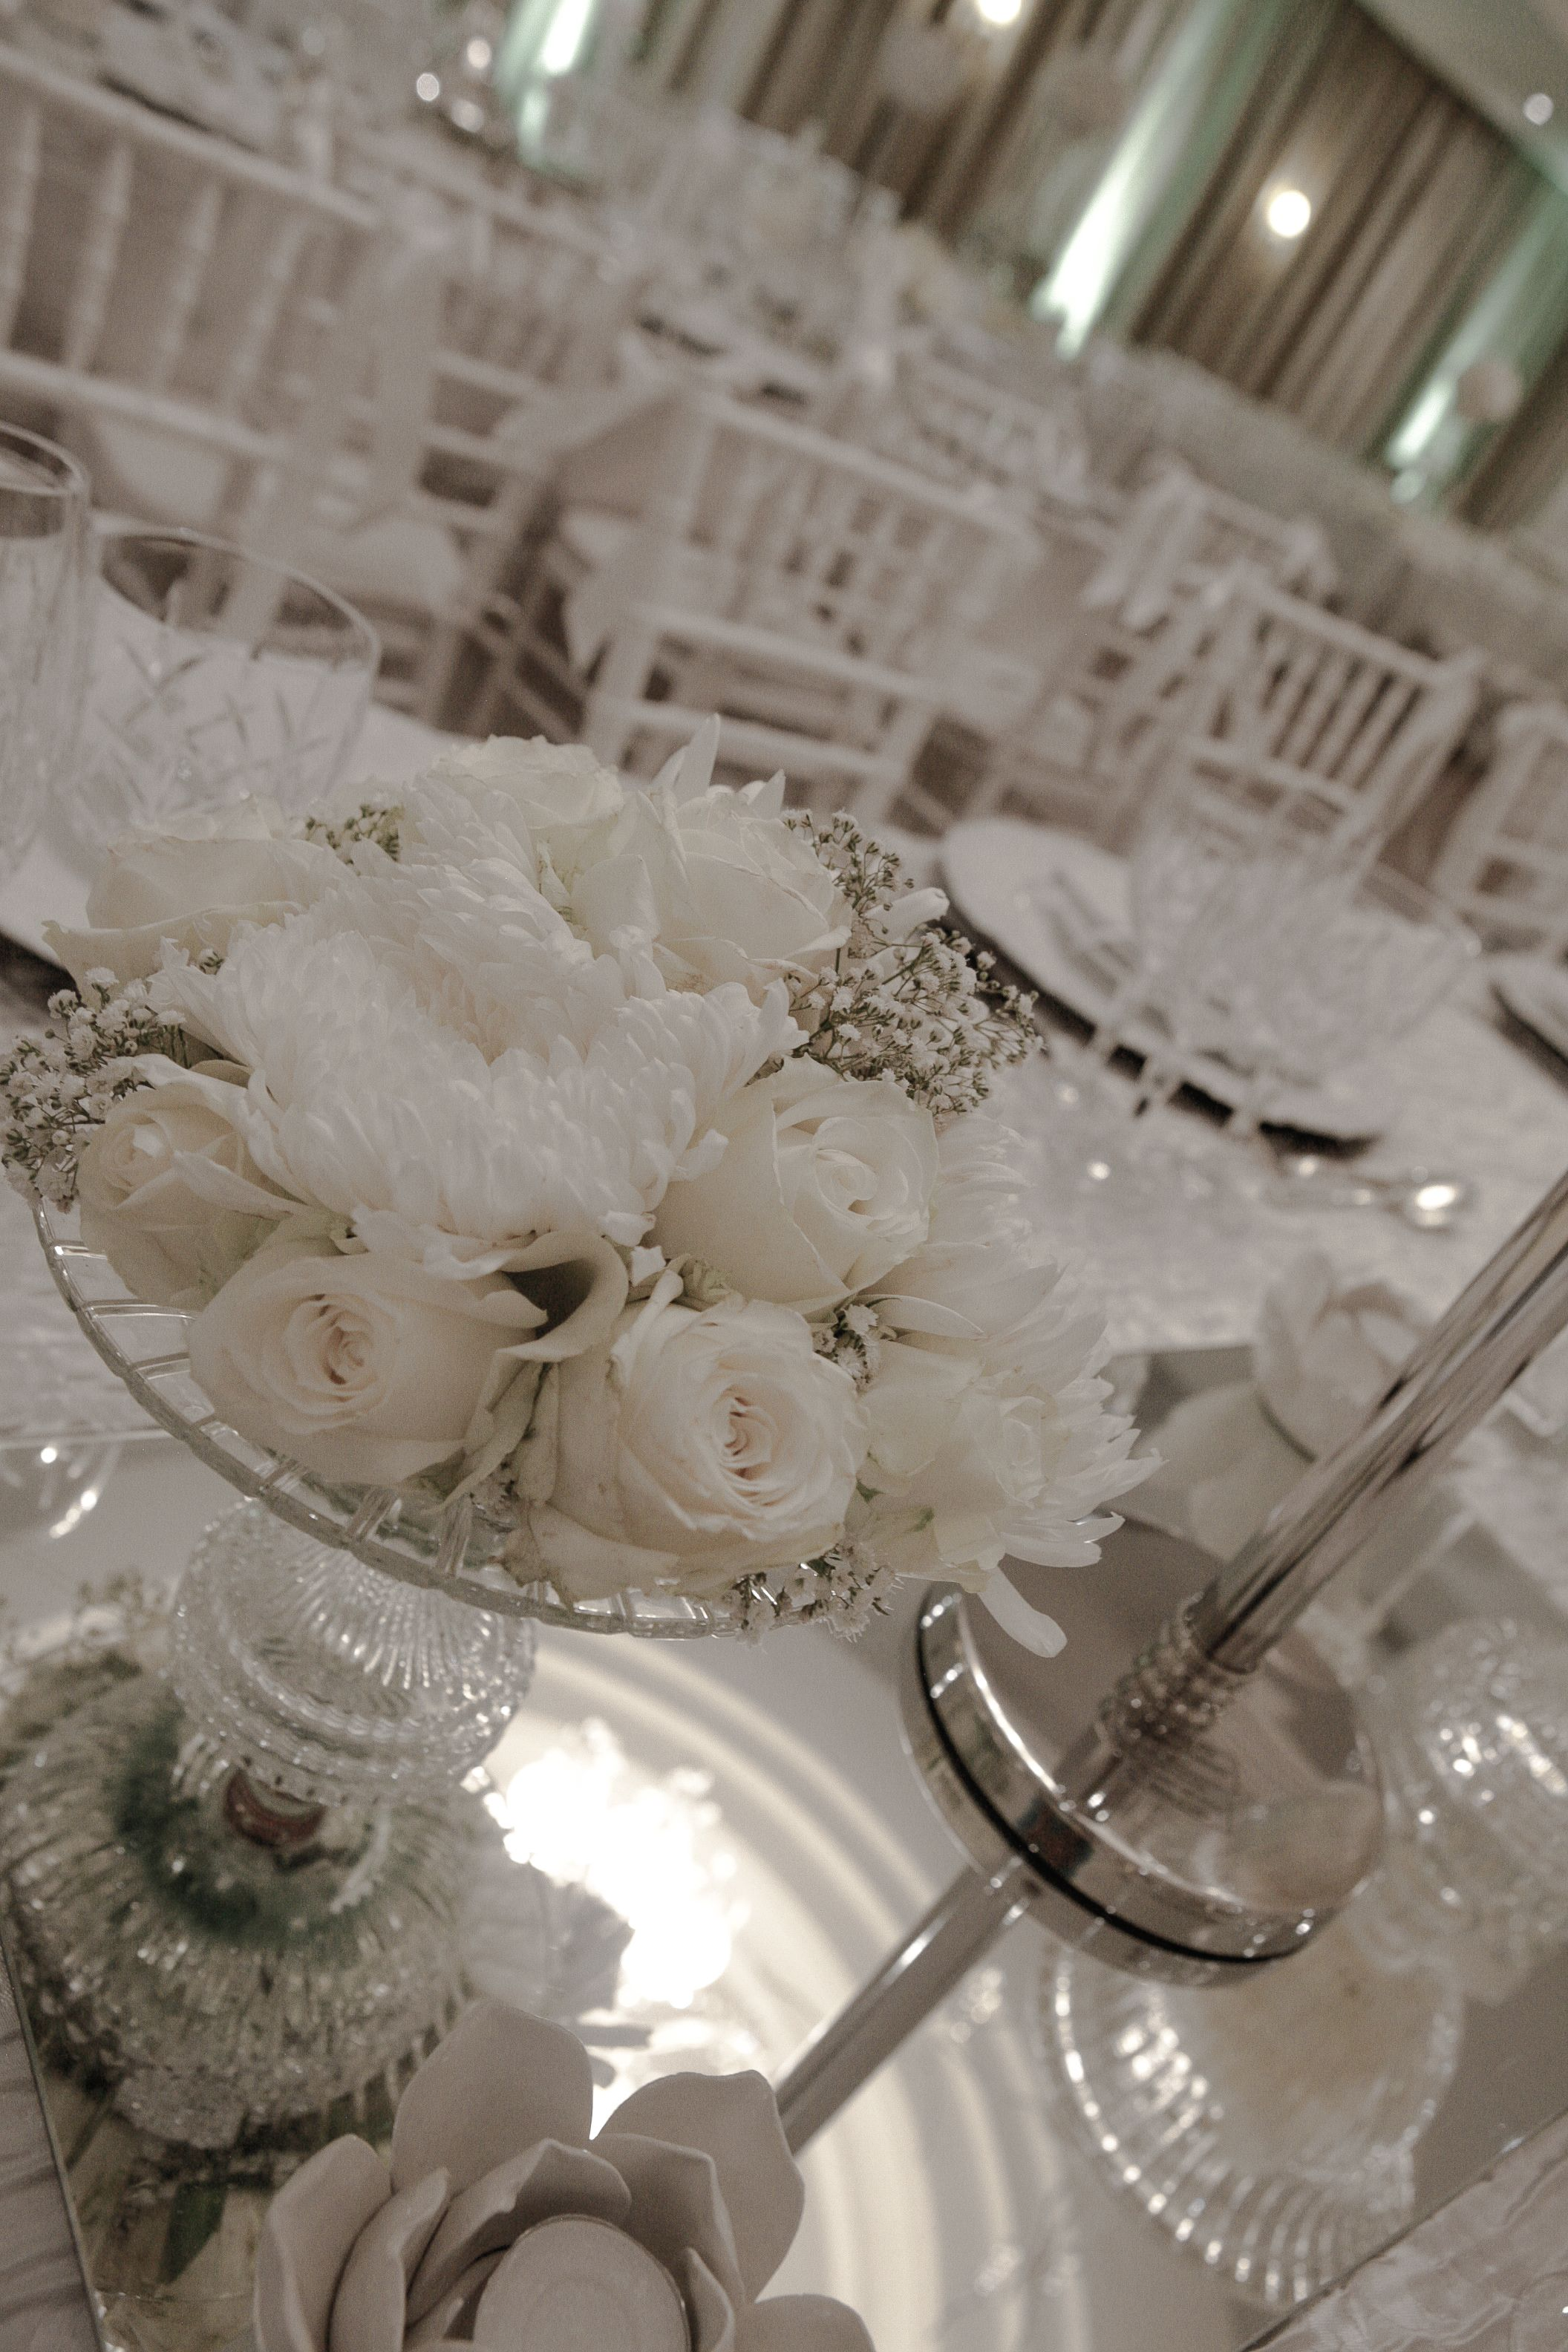 White Flower Arrangement In A Crystal Confetti Bowl Done By Sa